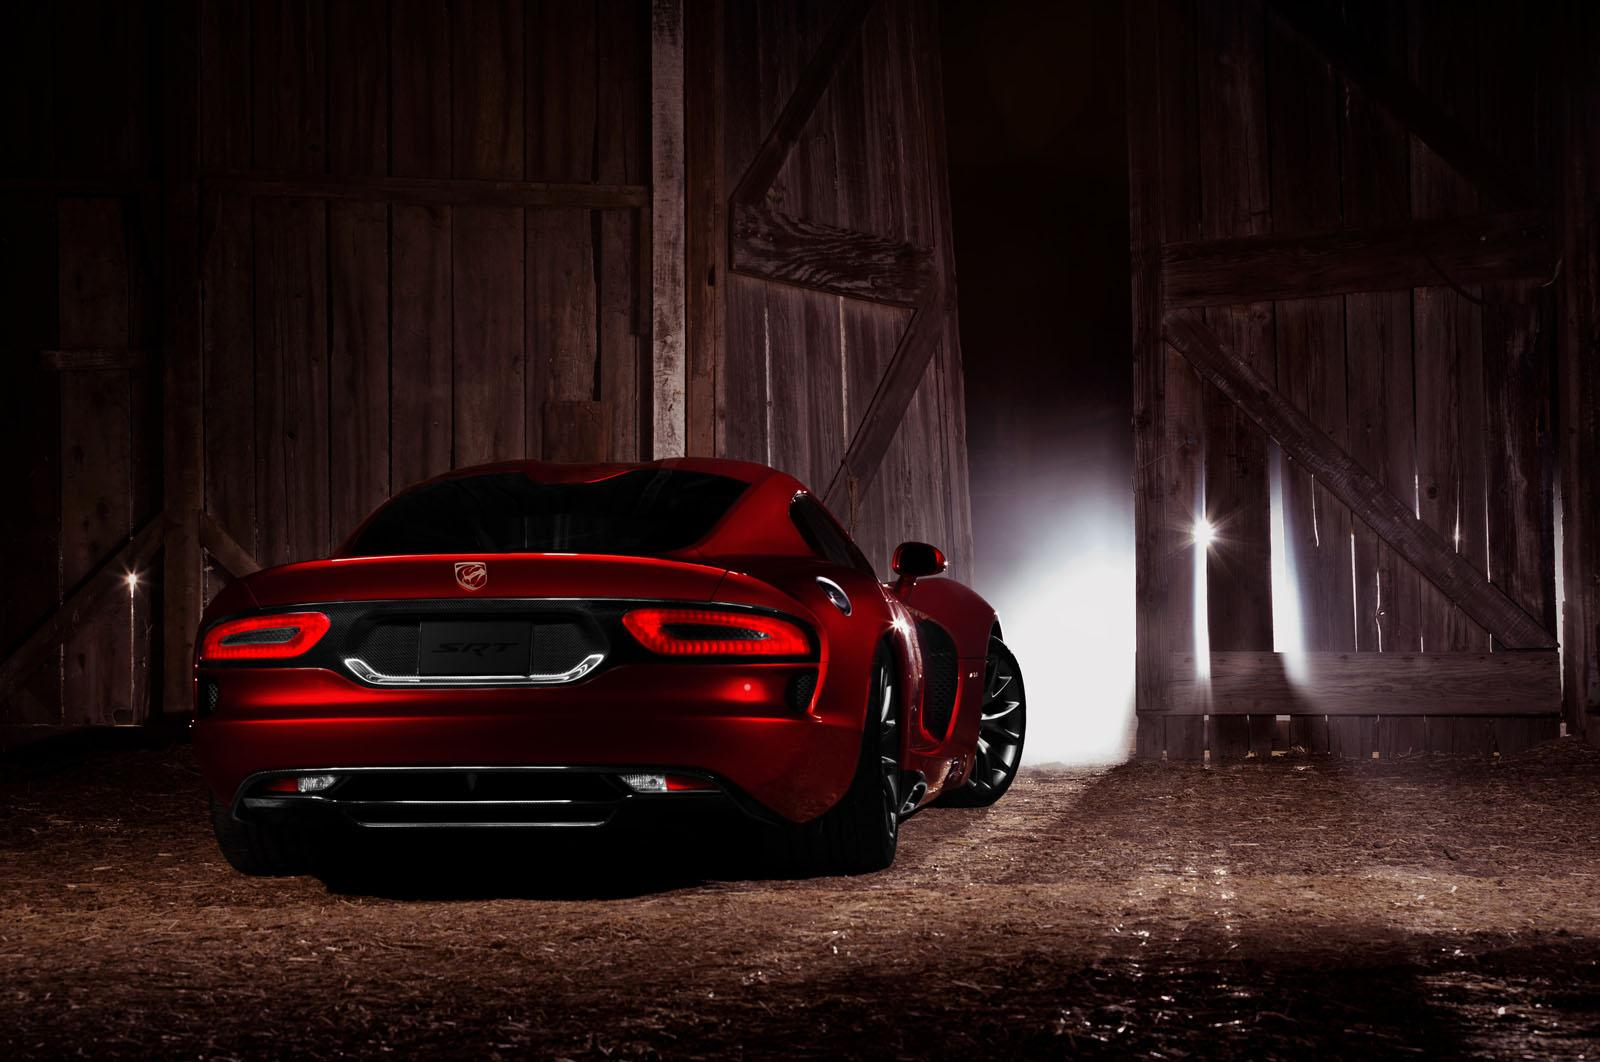 2013 SRT Viper GTS Launch Edition 5 2013 SRT Viper GTS Launch Edition   a better version than its previous models